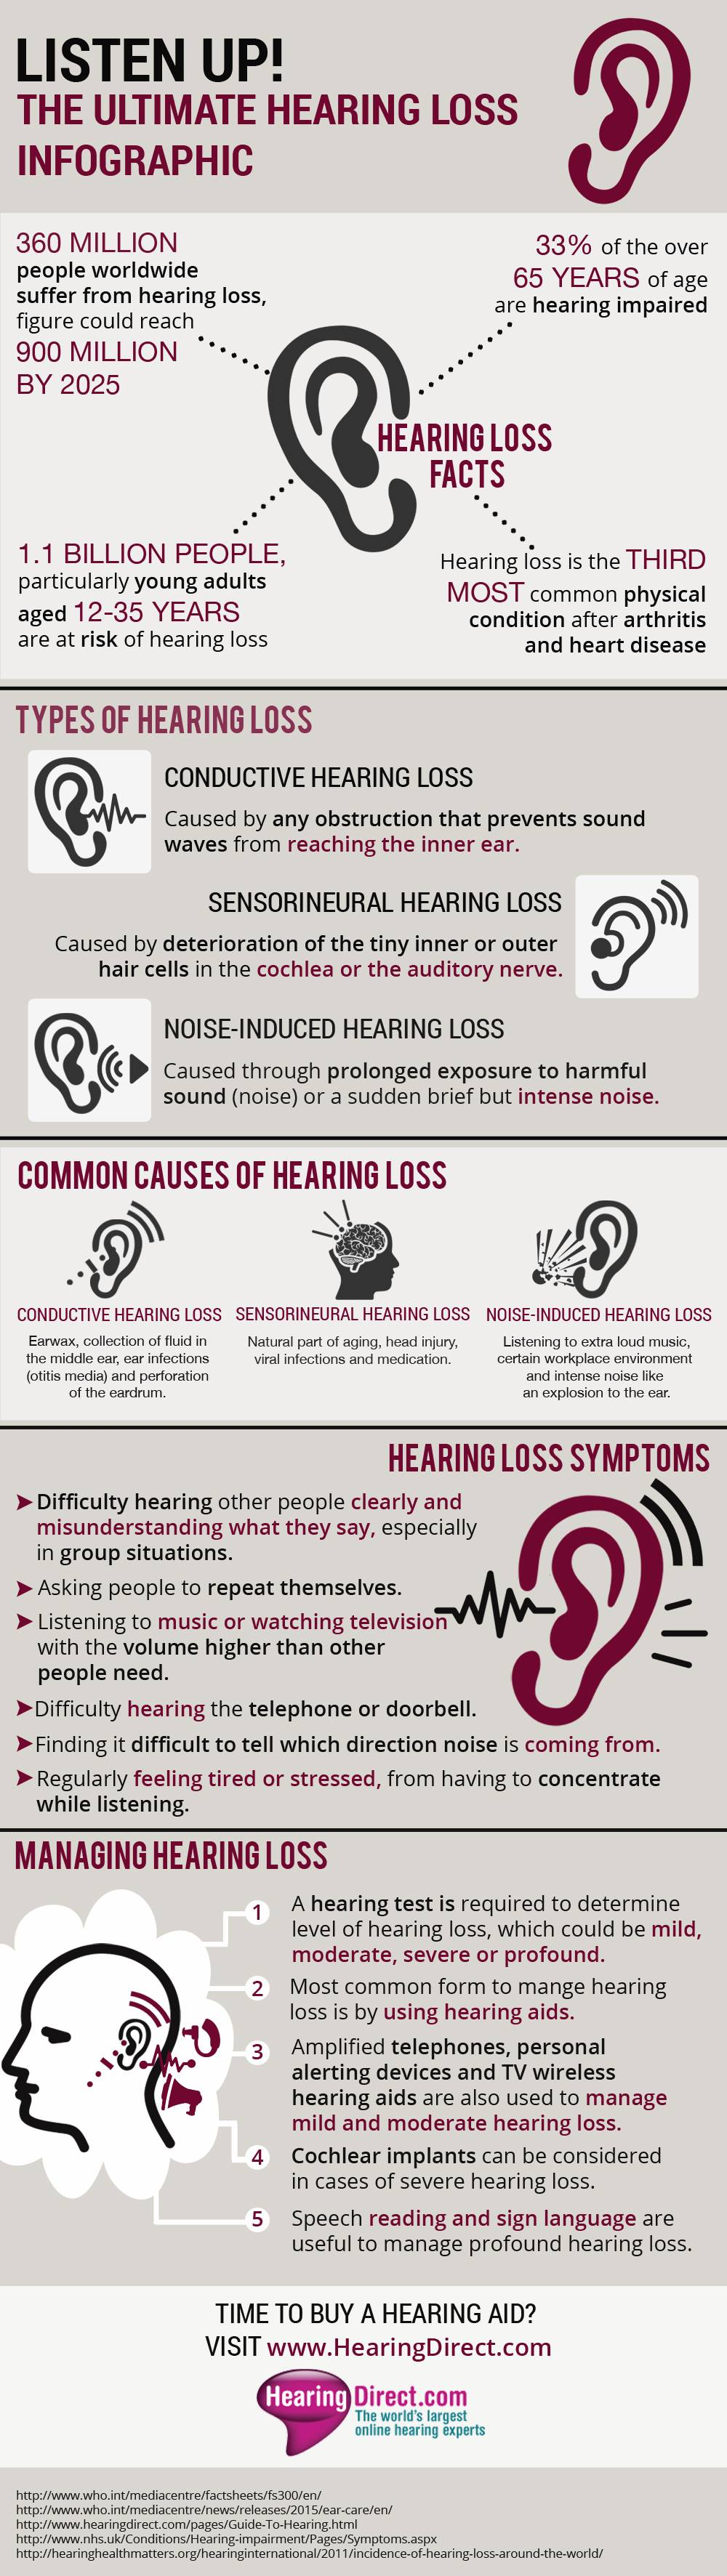 An infographic giving facts about hearing loss